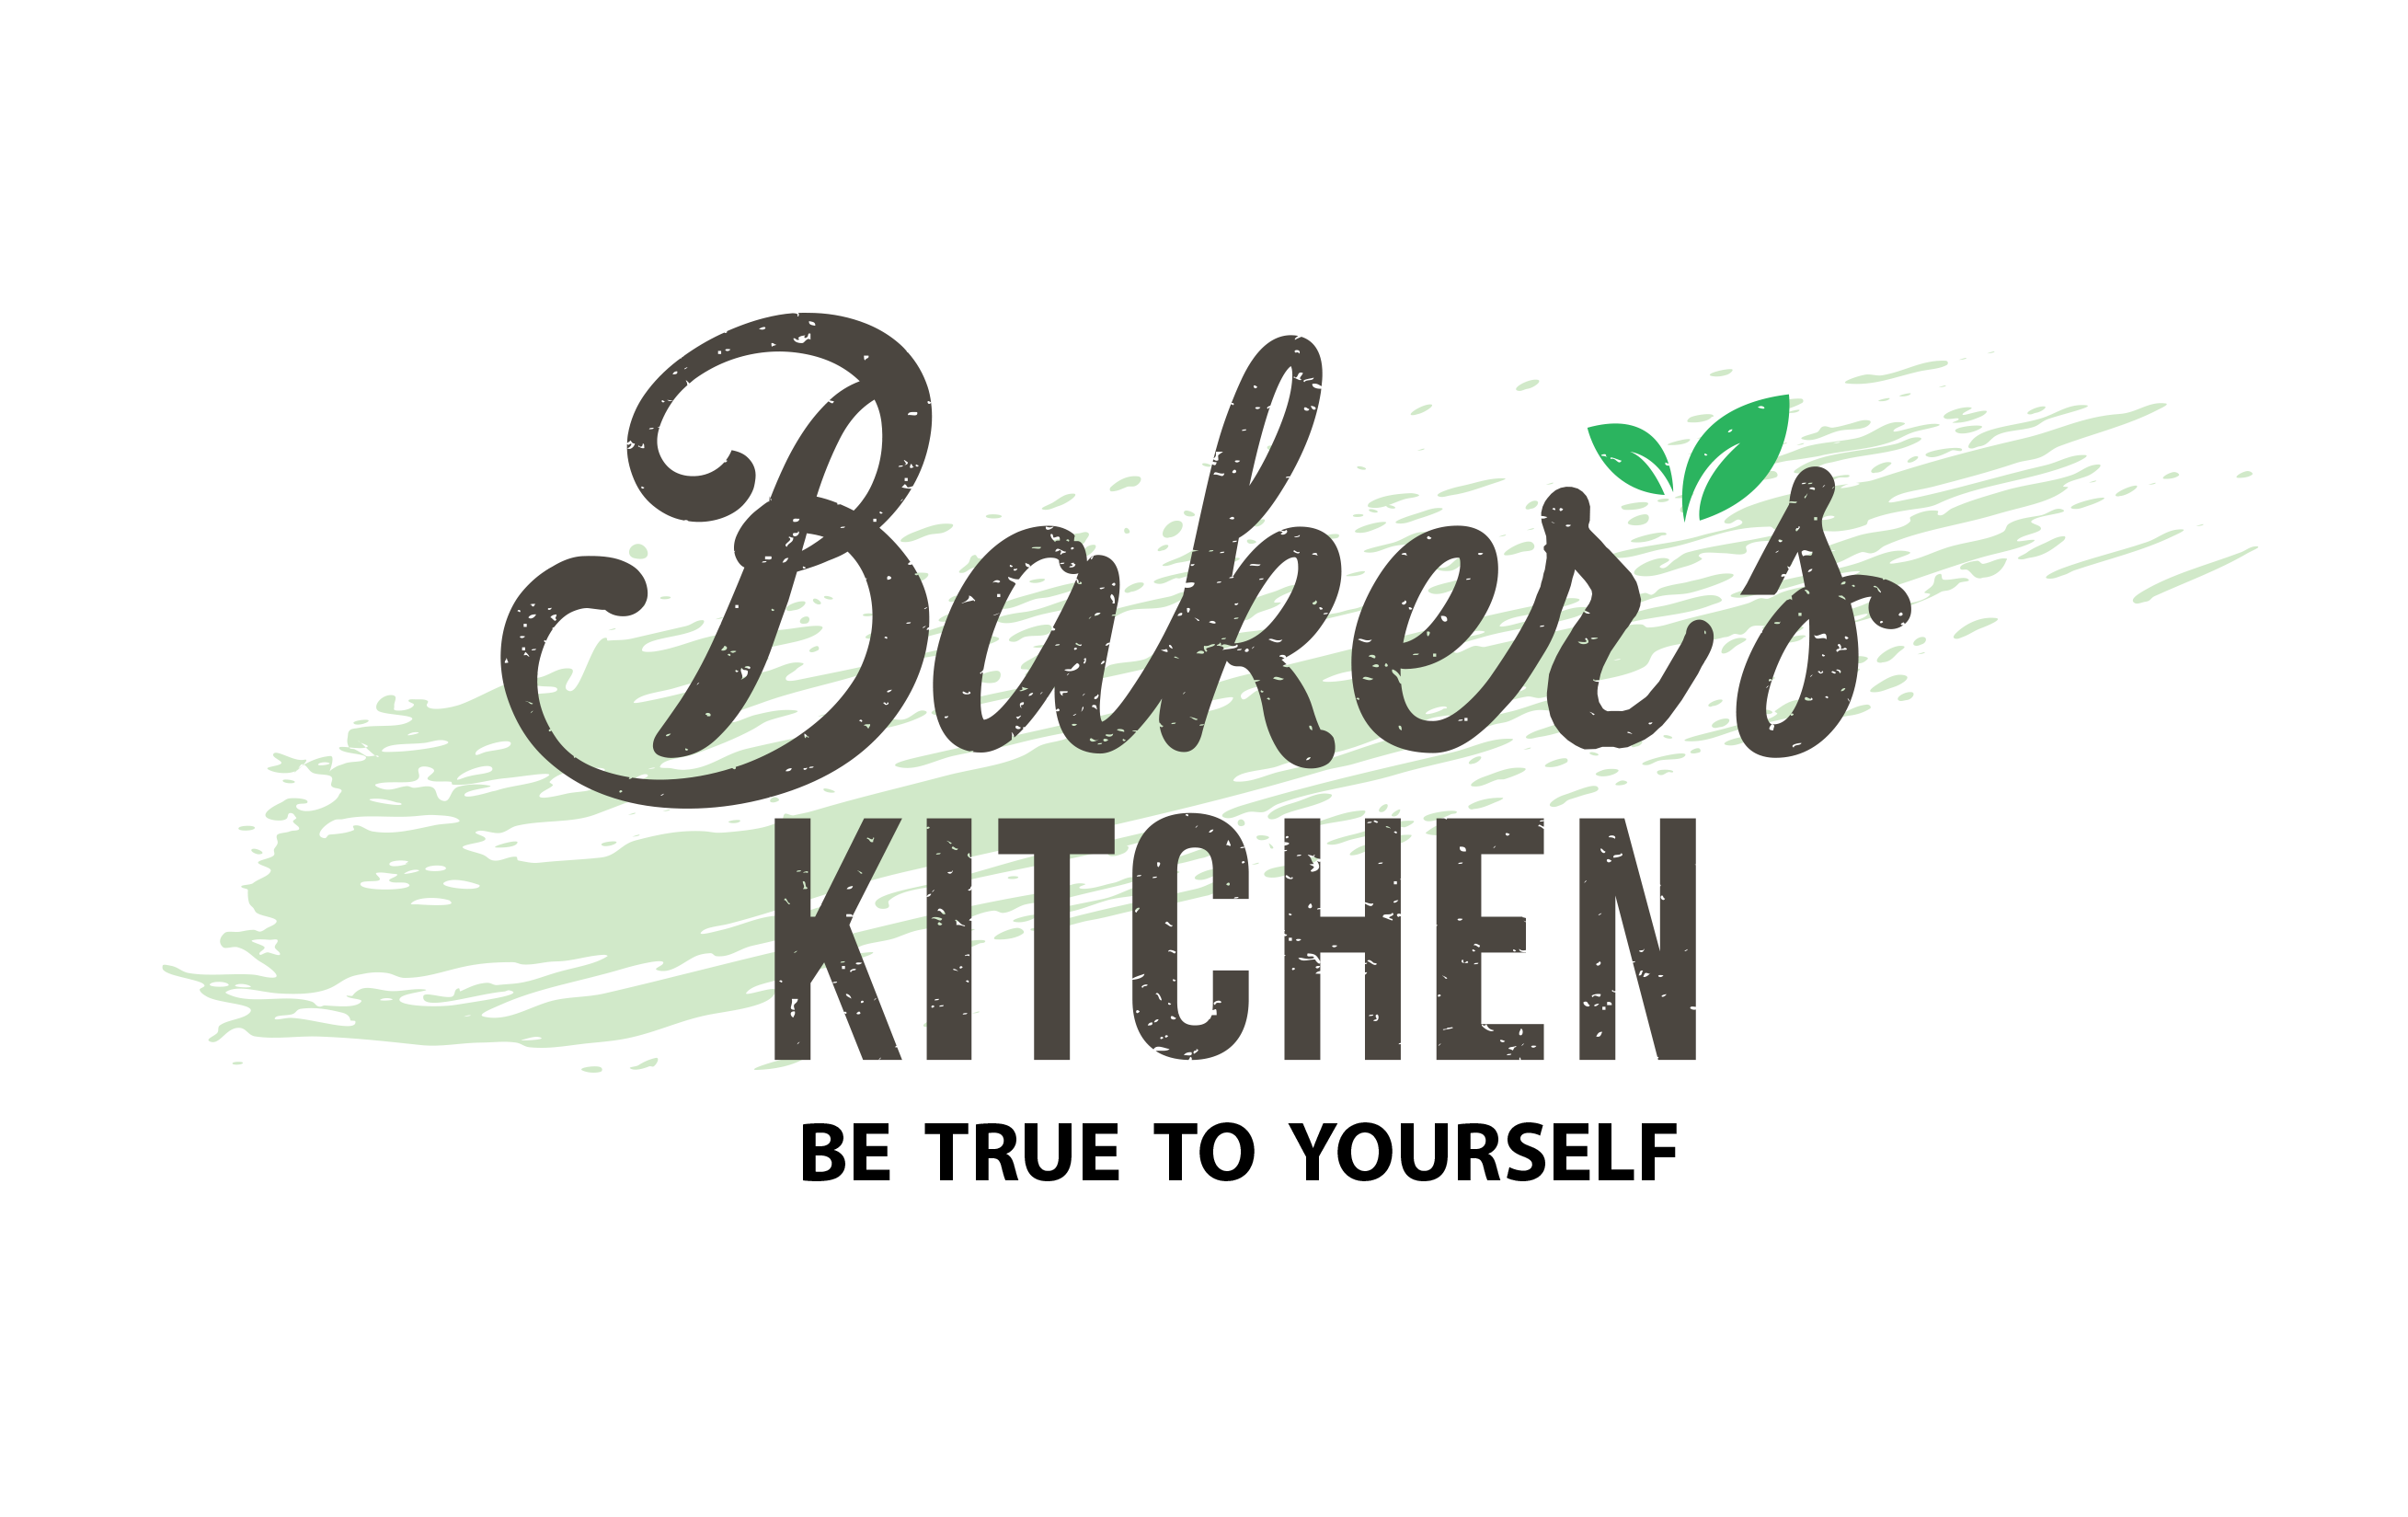 Baker 39 s kitchen innocent food we fit your lifestyle for Kitchen decoration logo